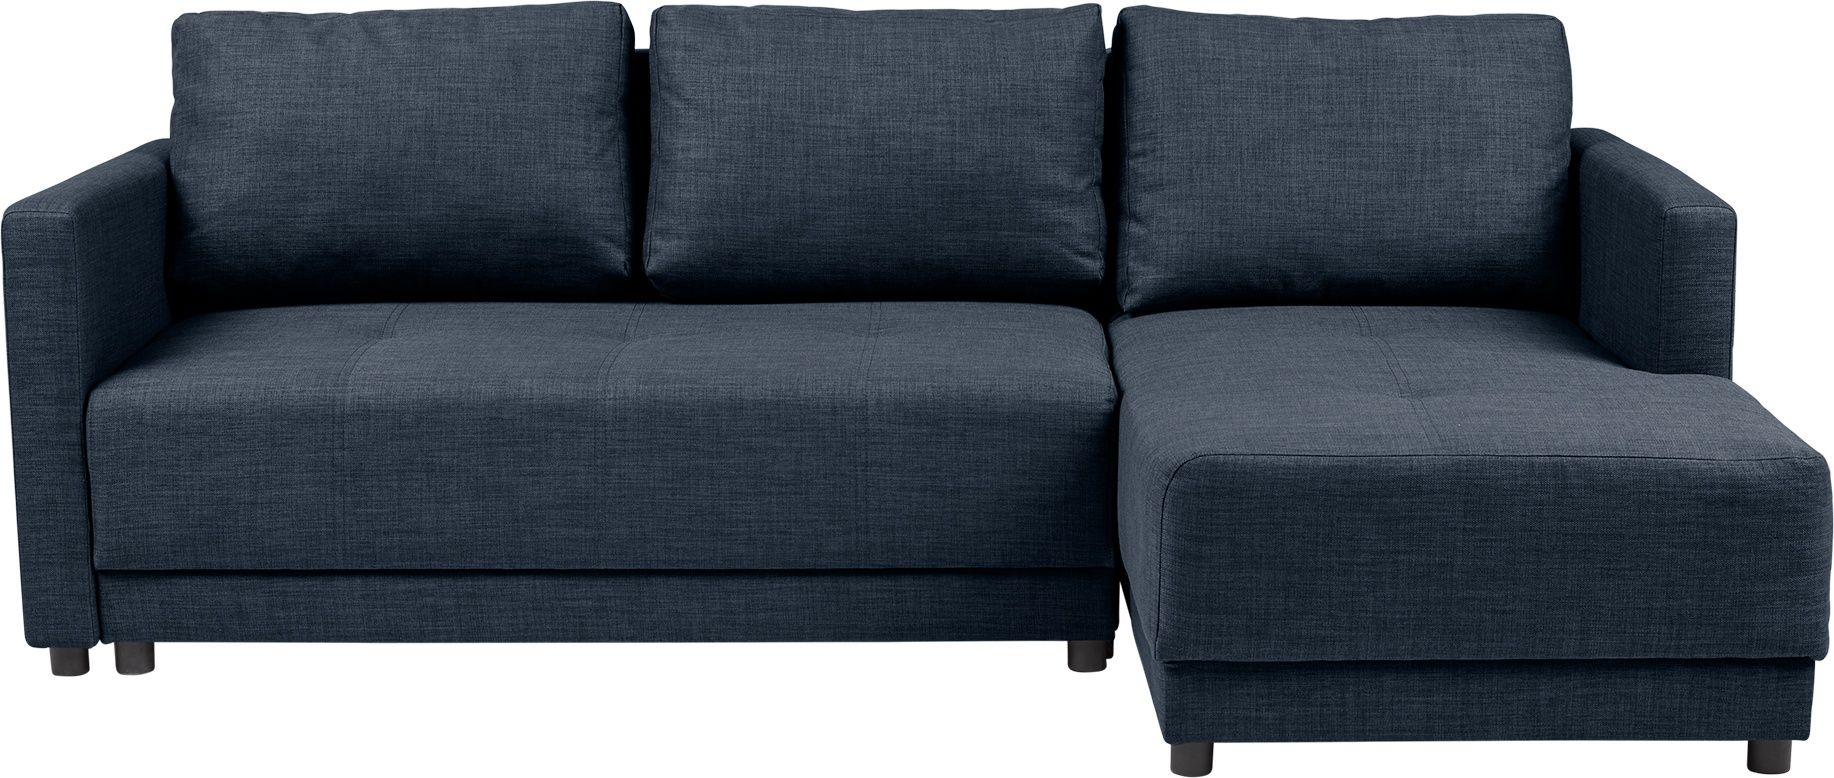 Brock Platform Sofa Bed, Navy From Made.com. Blue. NEW They Said You Needed  To Blow The Budget For A Quality Storage Sofa Bed. But We Know Better. W..